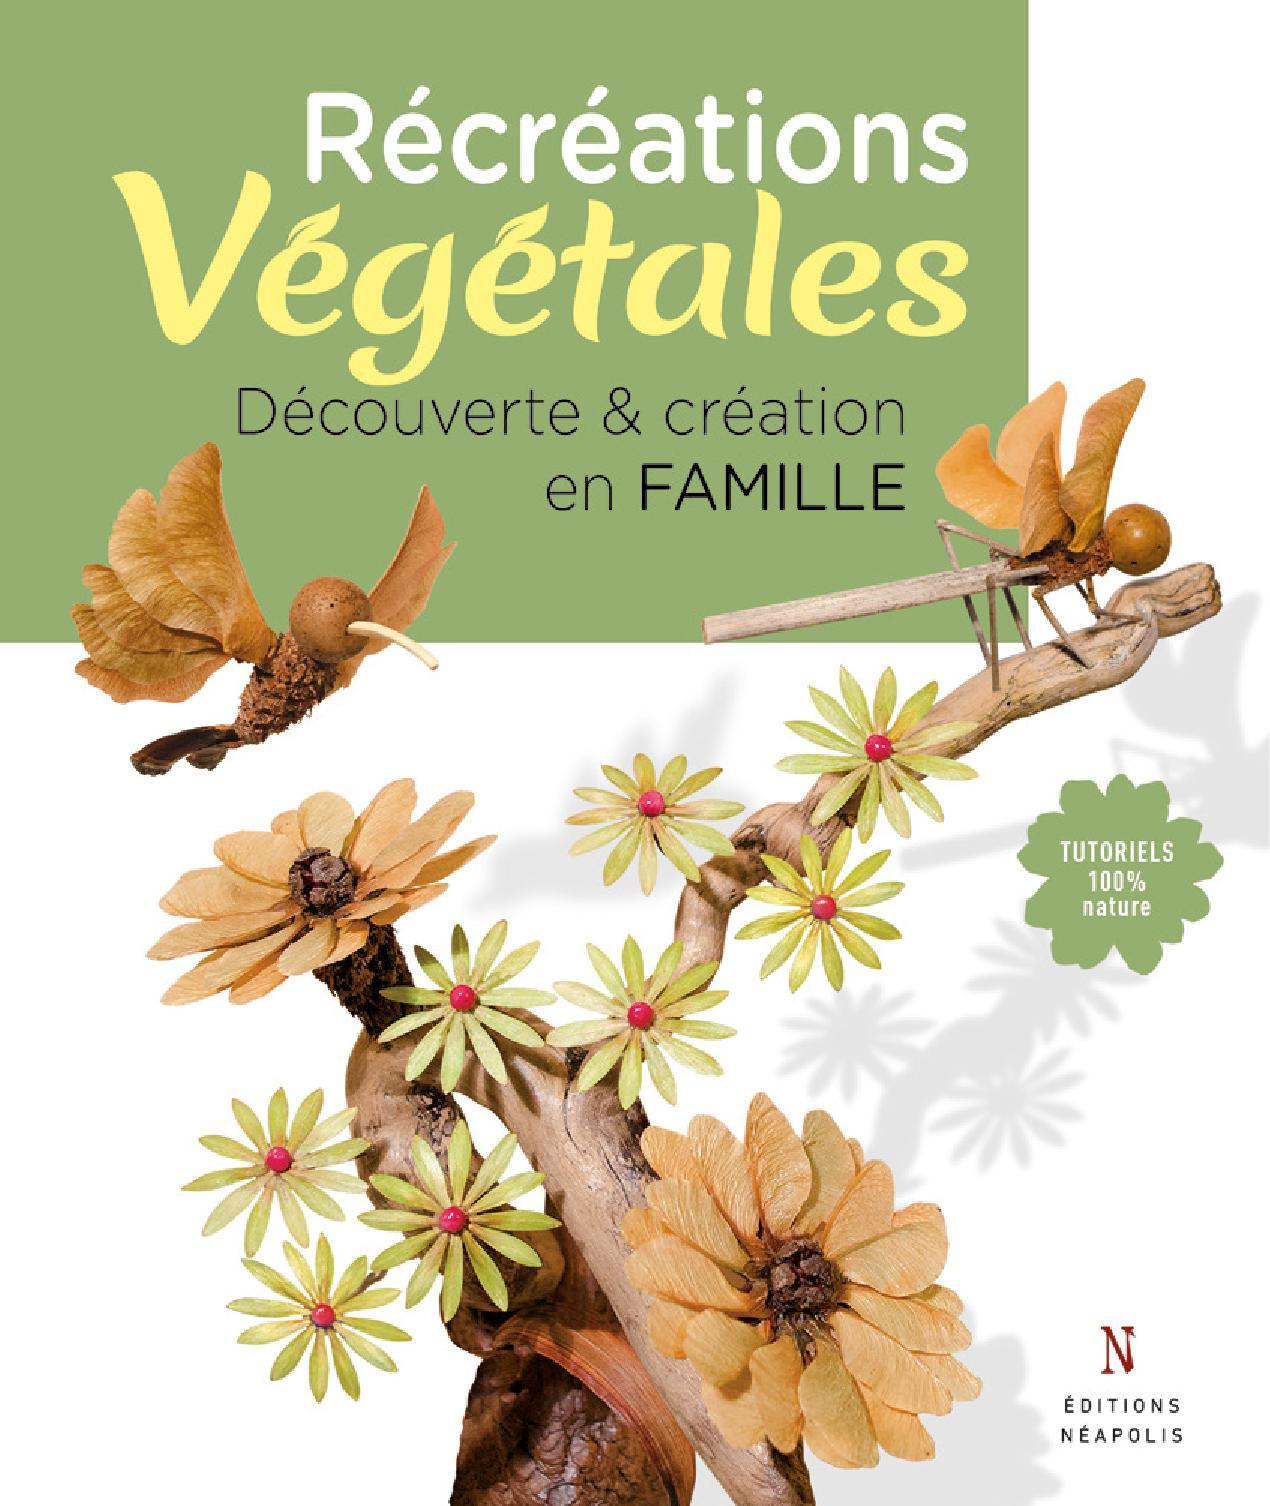 RECREATIONS VEGETALES